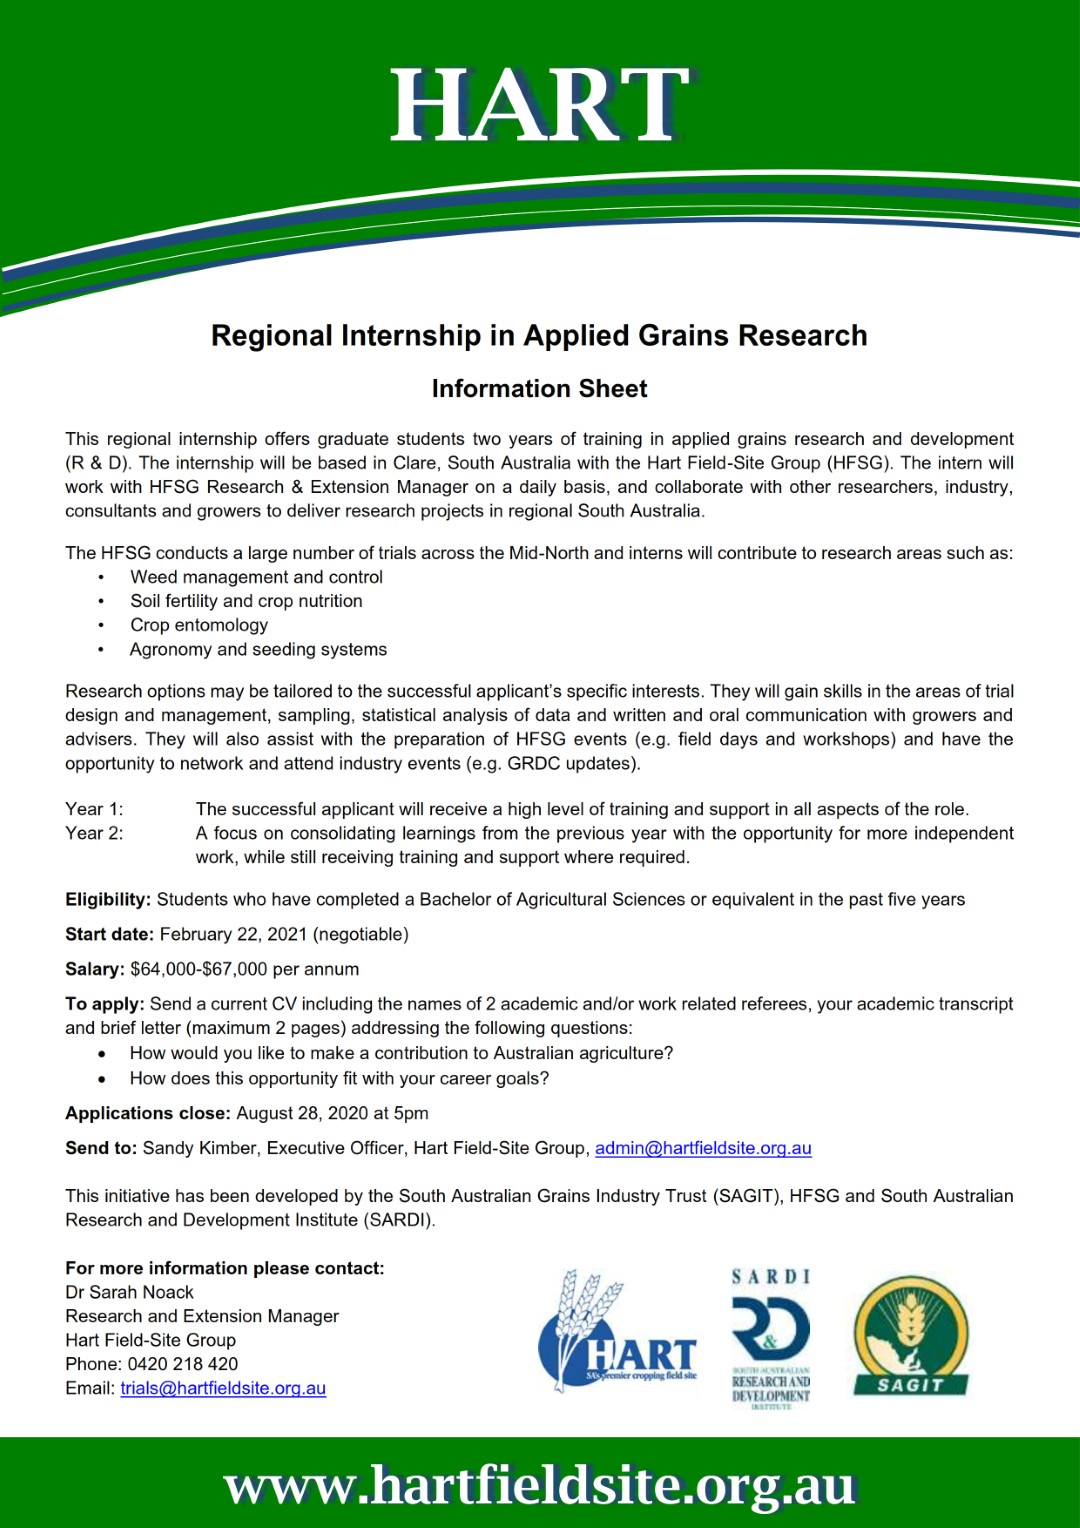 Hart's 2021 Regional Internship in Applied Grains Research - information sheet